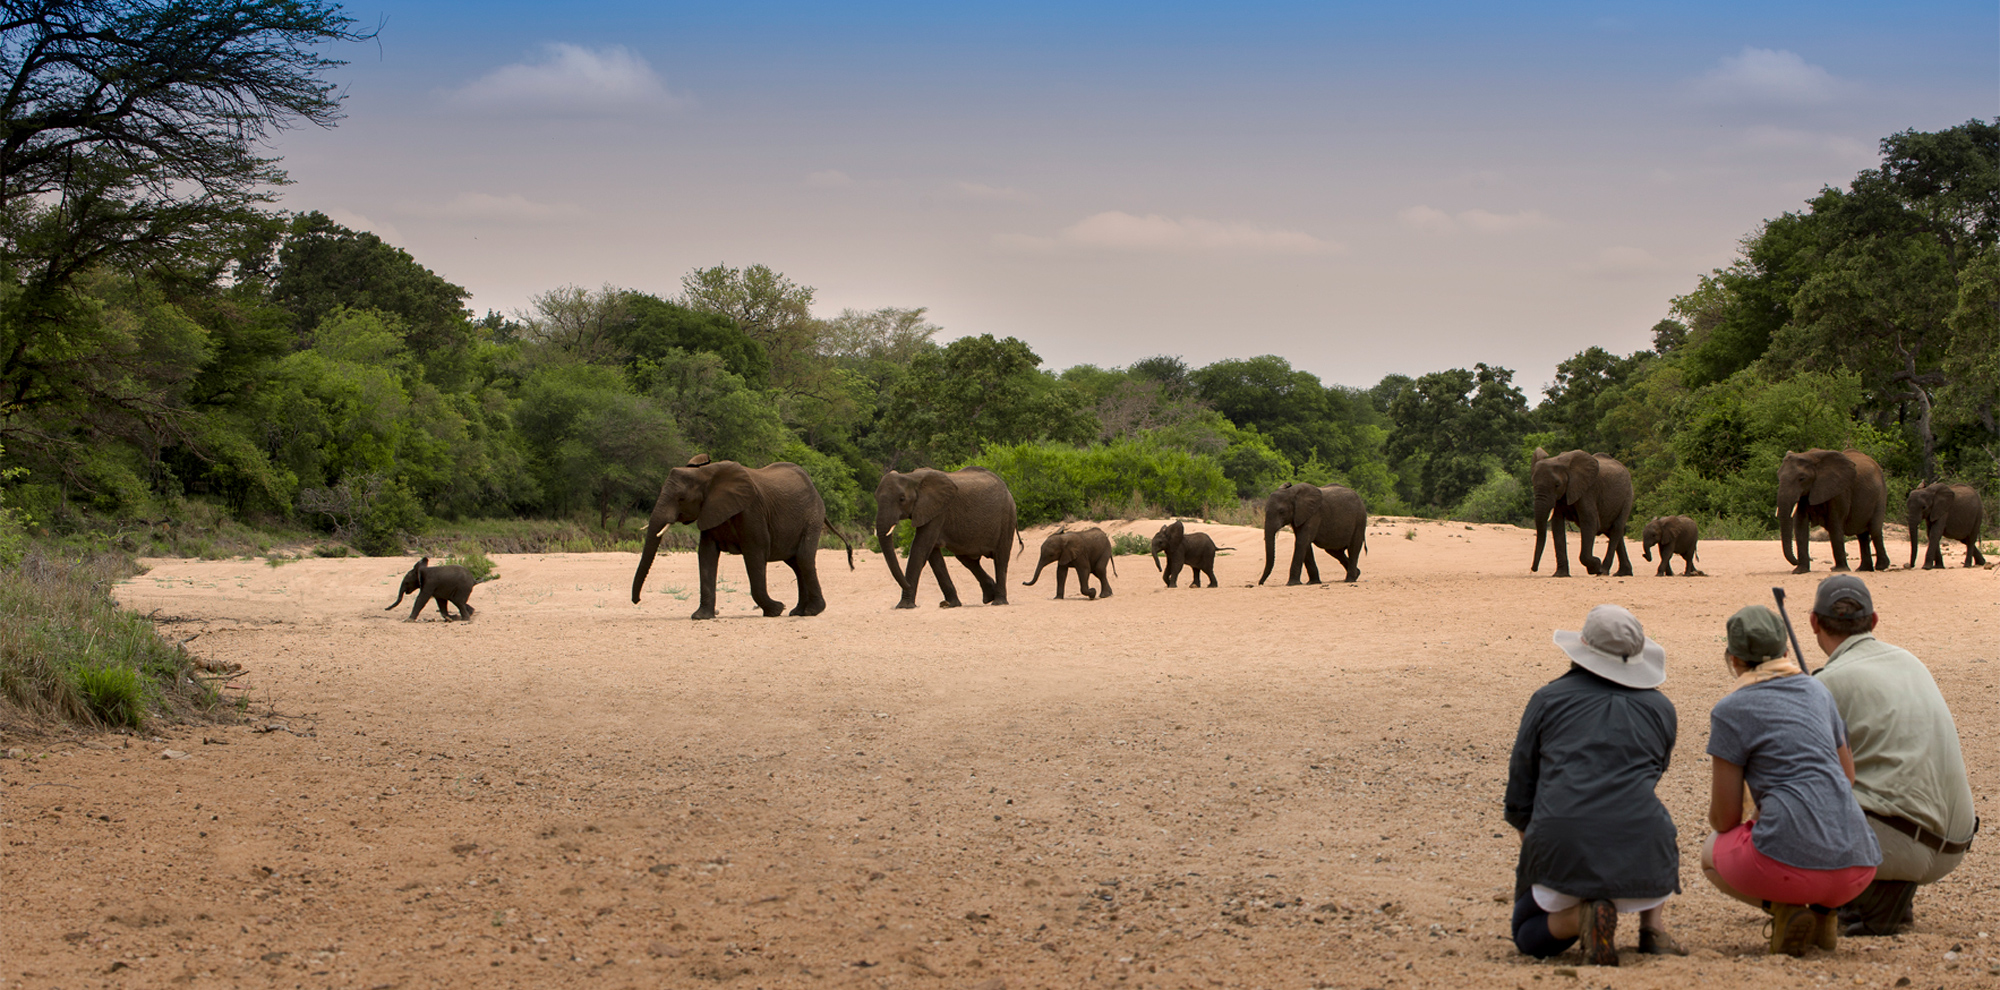 Elephants crossing a dry riverbed with guests watching on